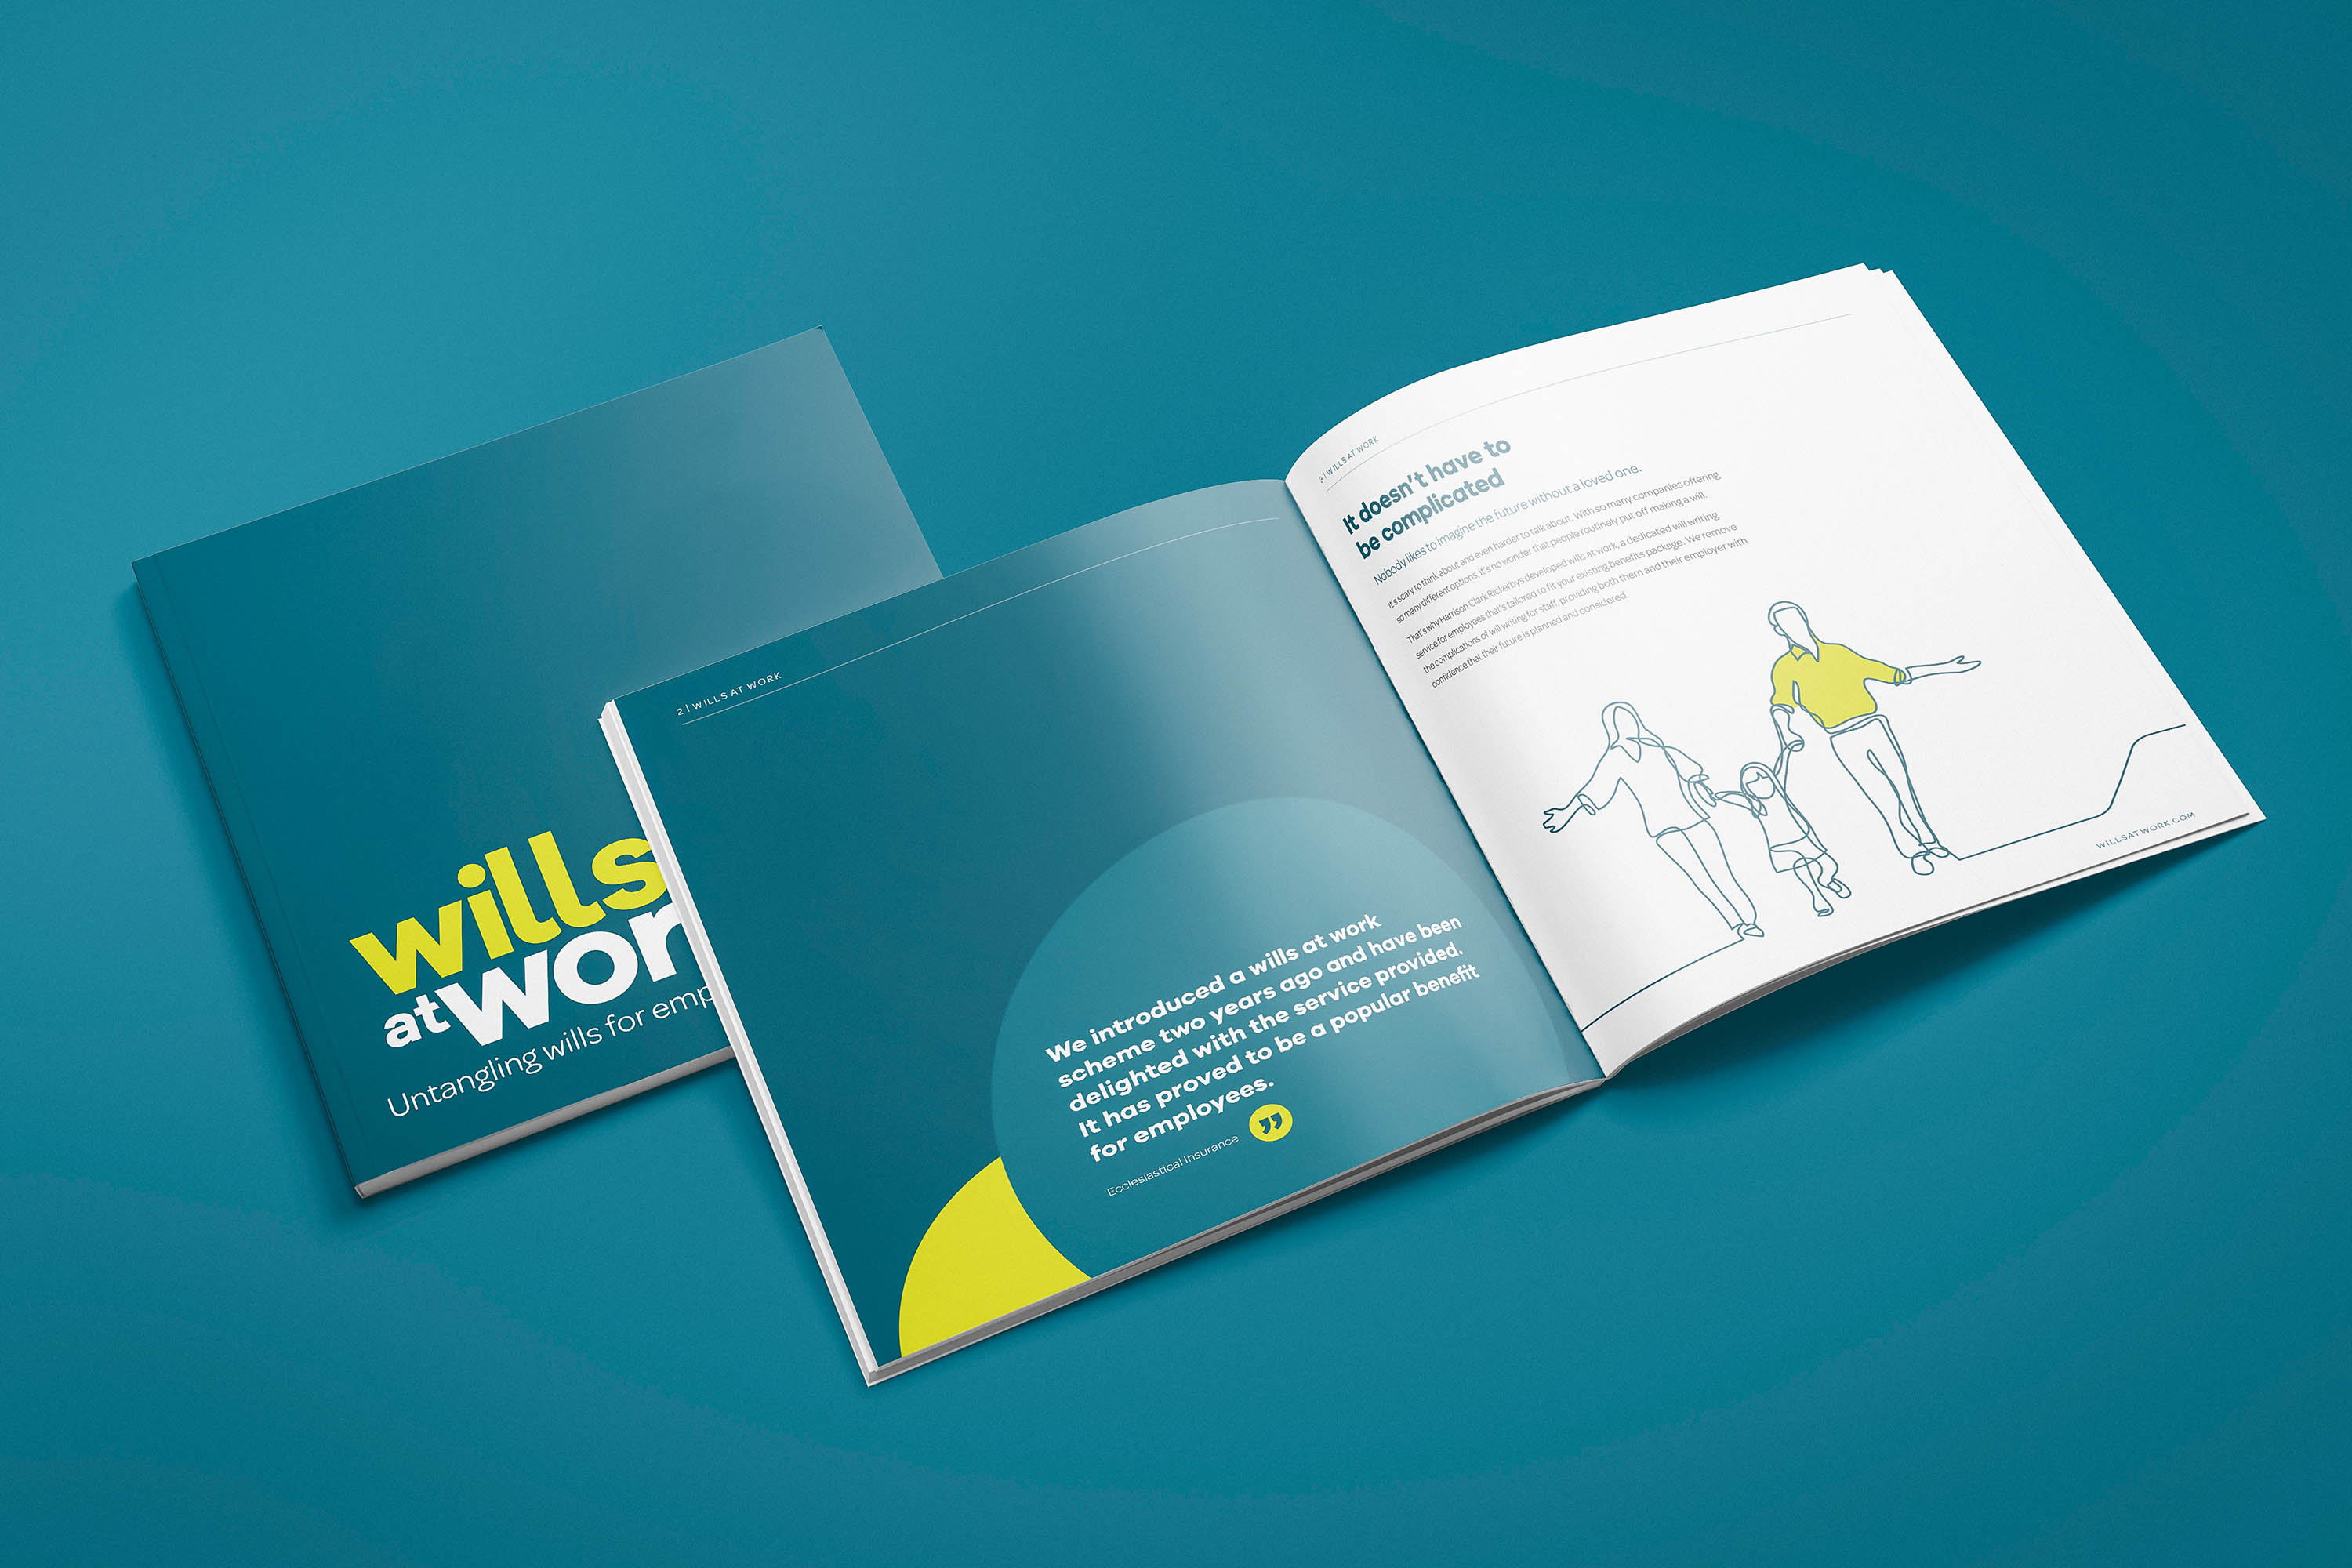 Brochure design for Harrison Clark Rickerbys' Wills at Work by Mighty, branding agency Worcester